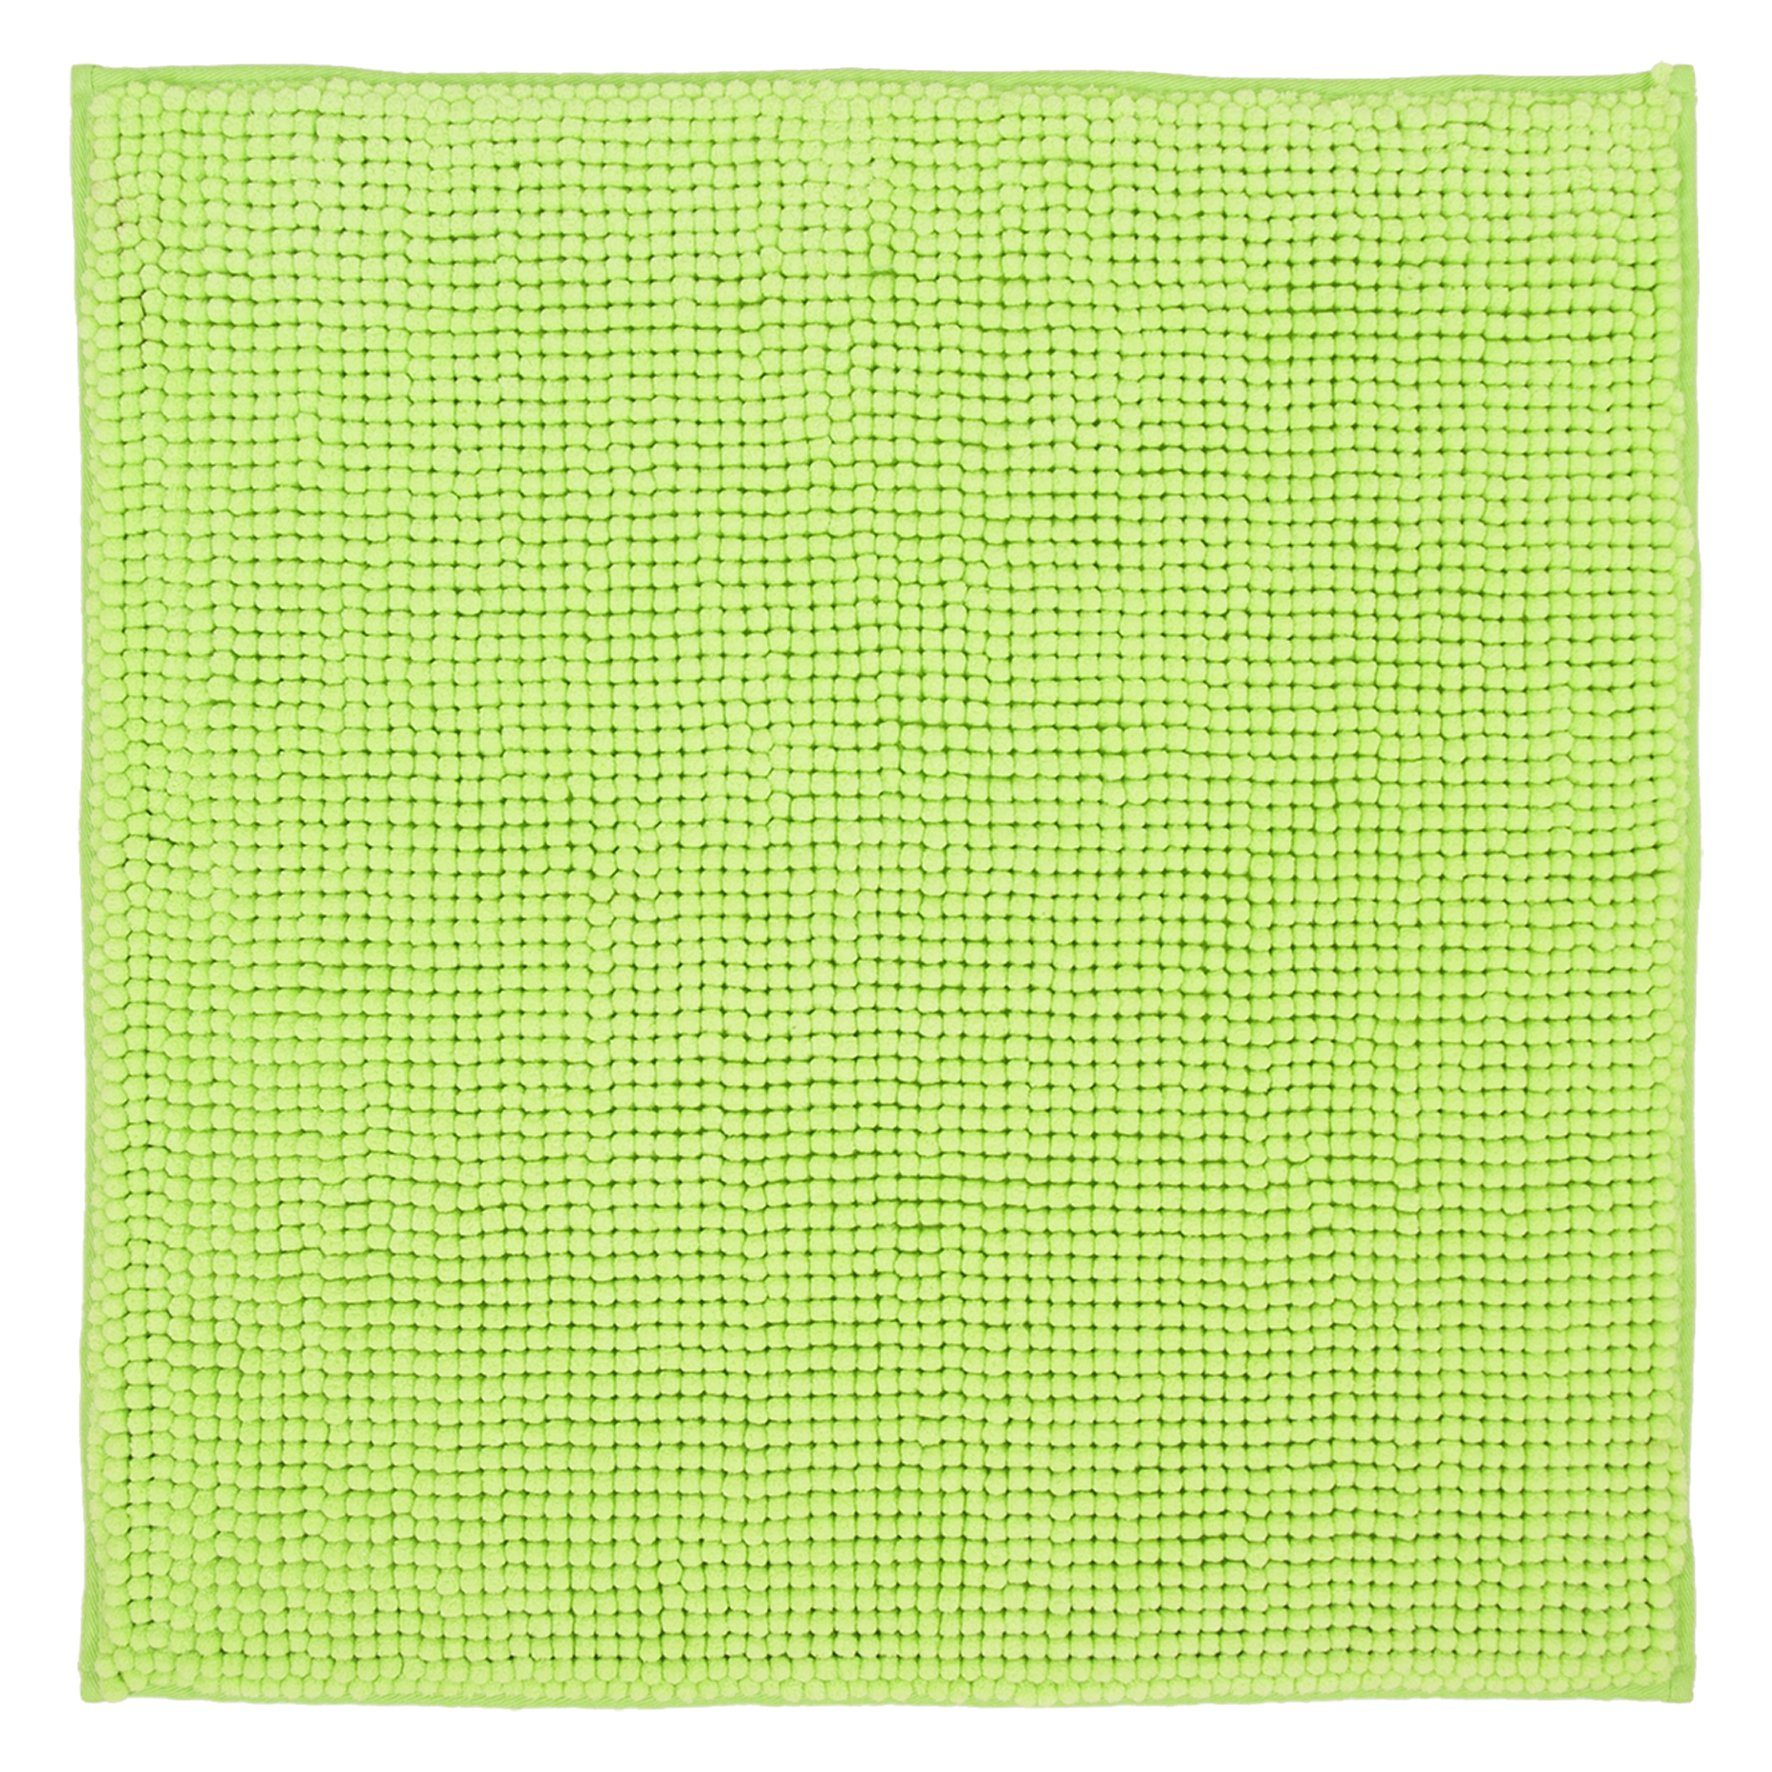 DIFFERNZ 31.102.89 Candore Bath Mat, Lime Green/Matching Colour by Differnz